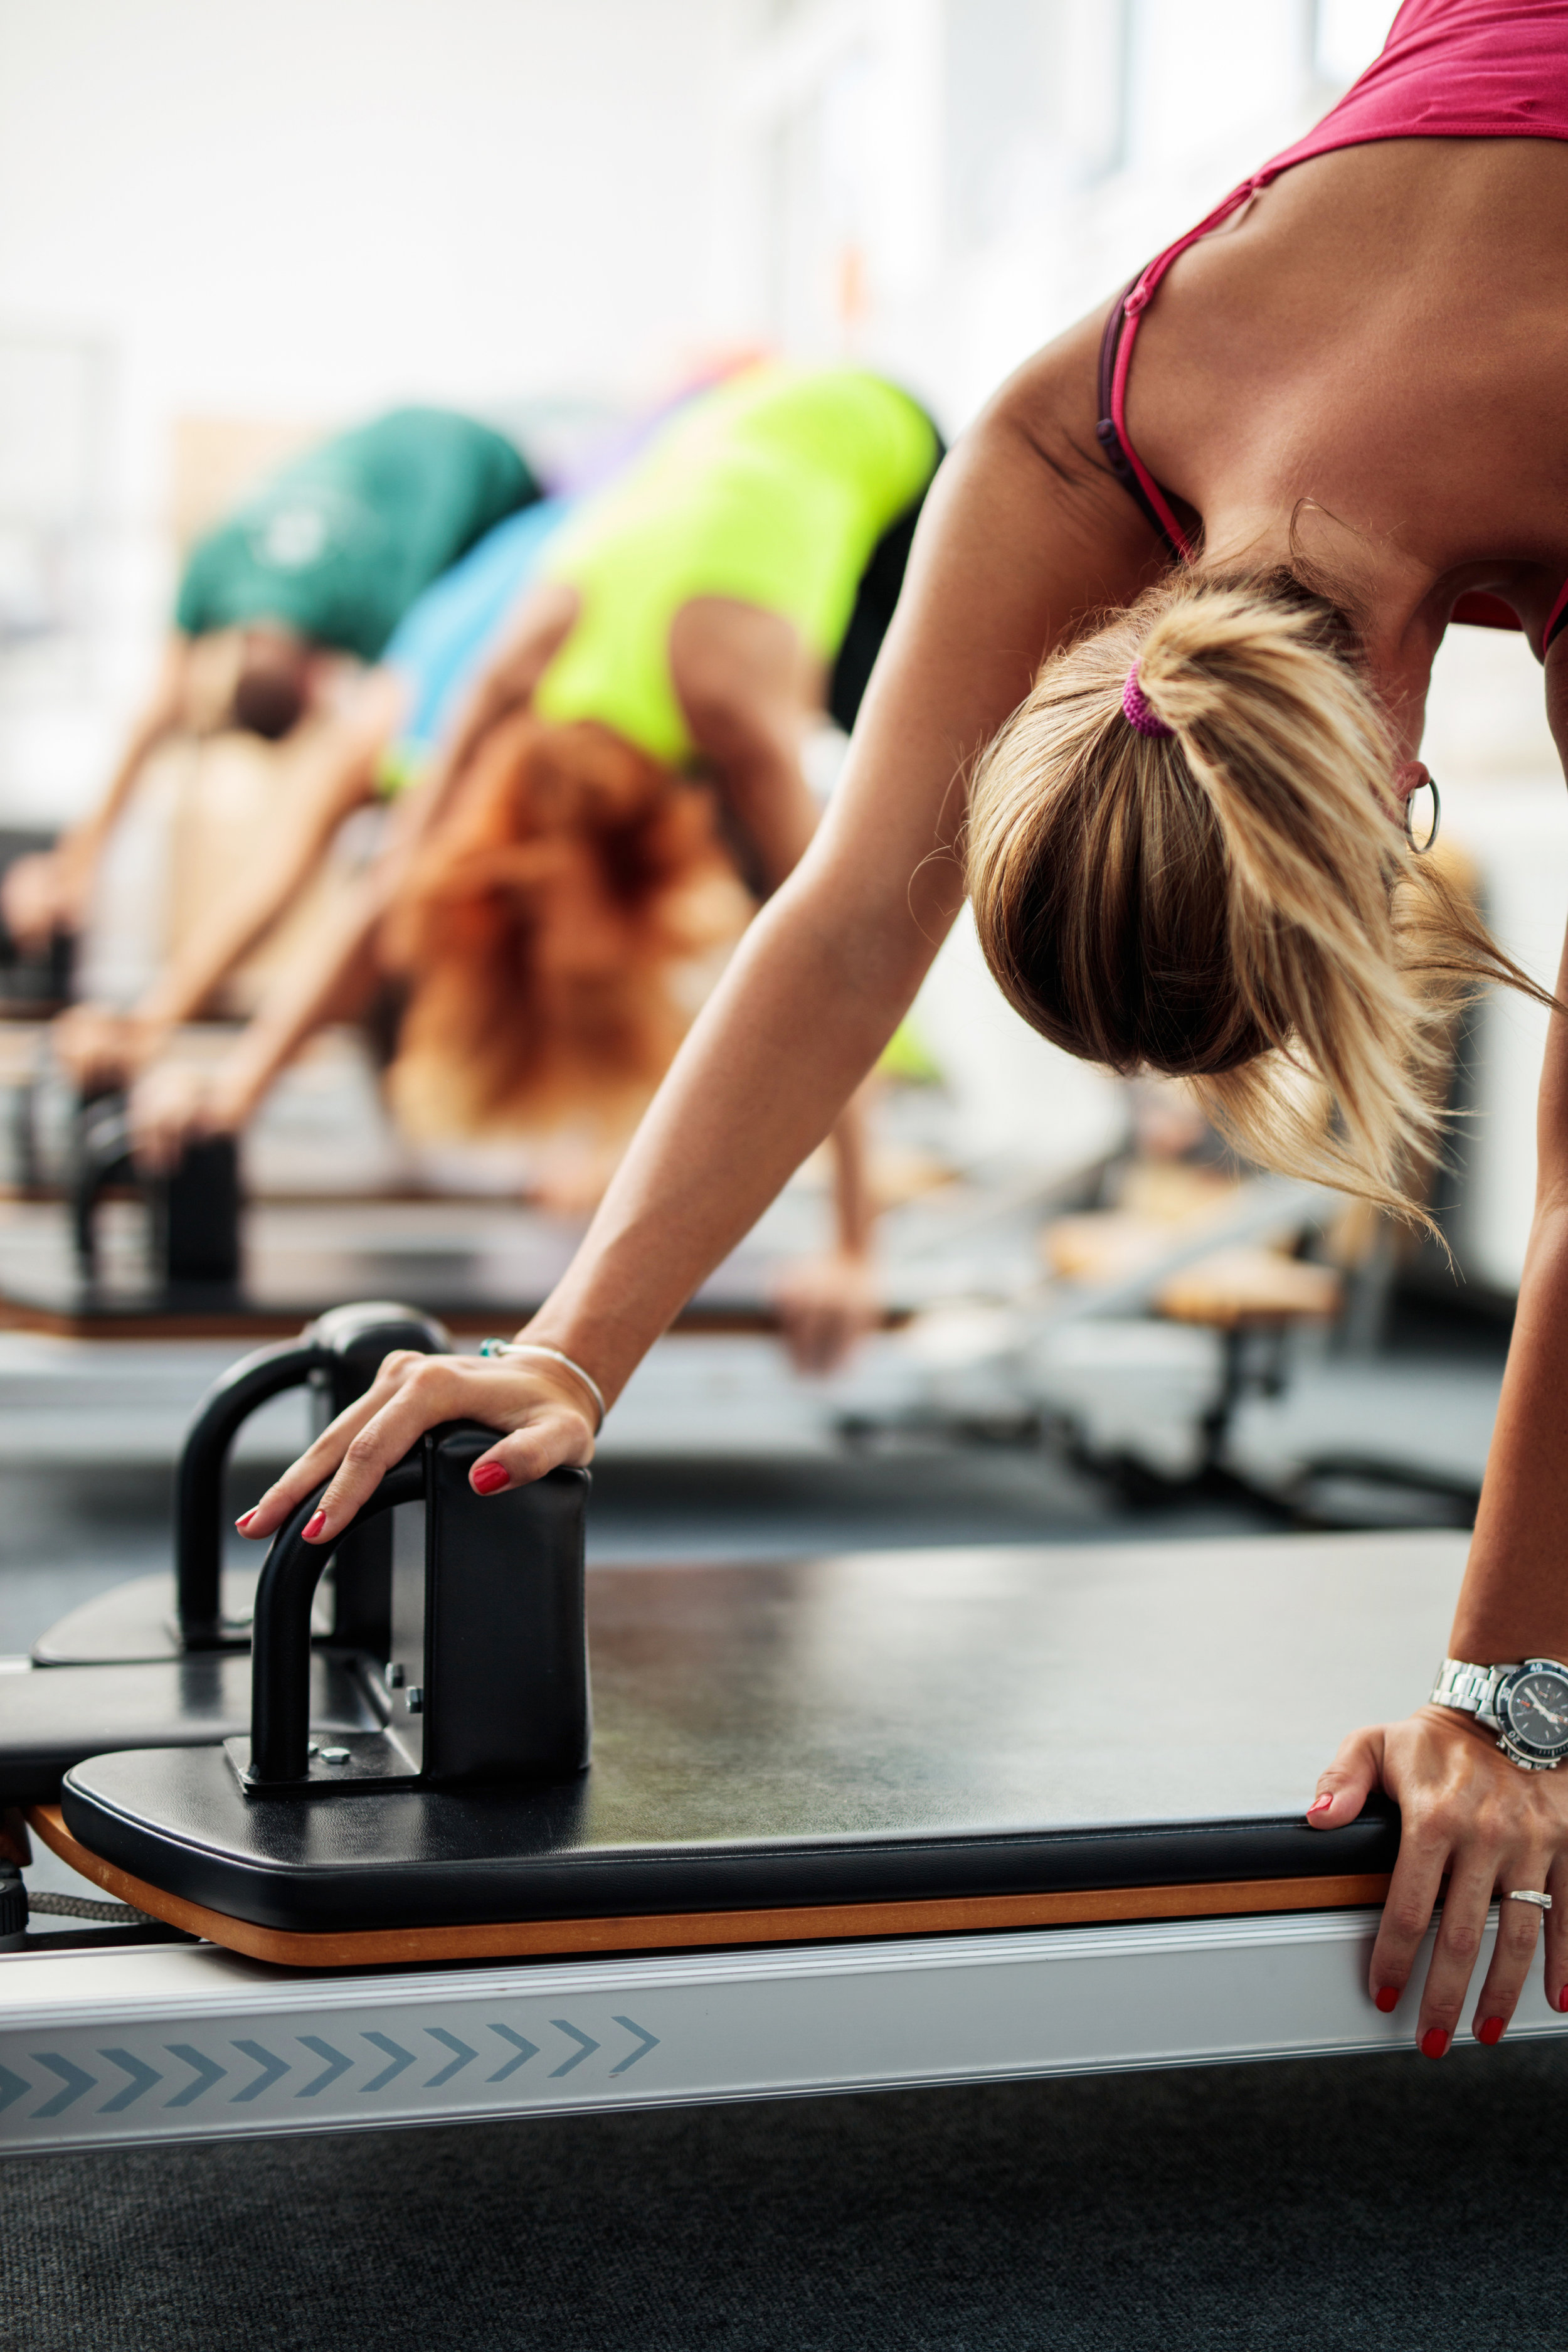 Group-of-people-having-a-Pilates-class-on-exercise-machines.-495505980_2579x3869.jpeg